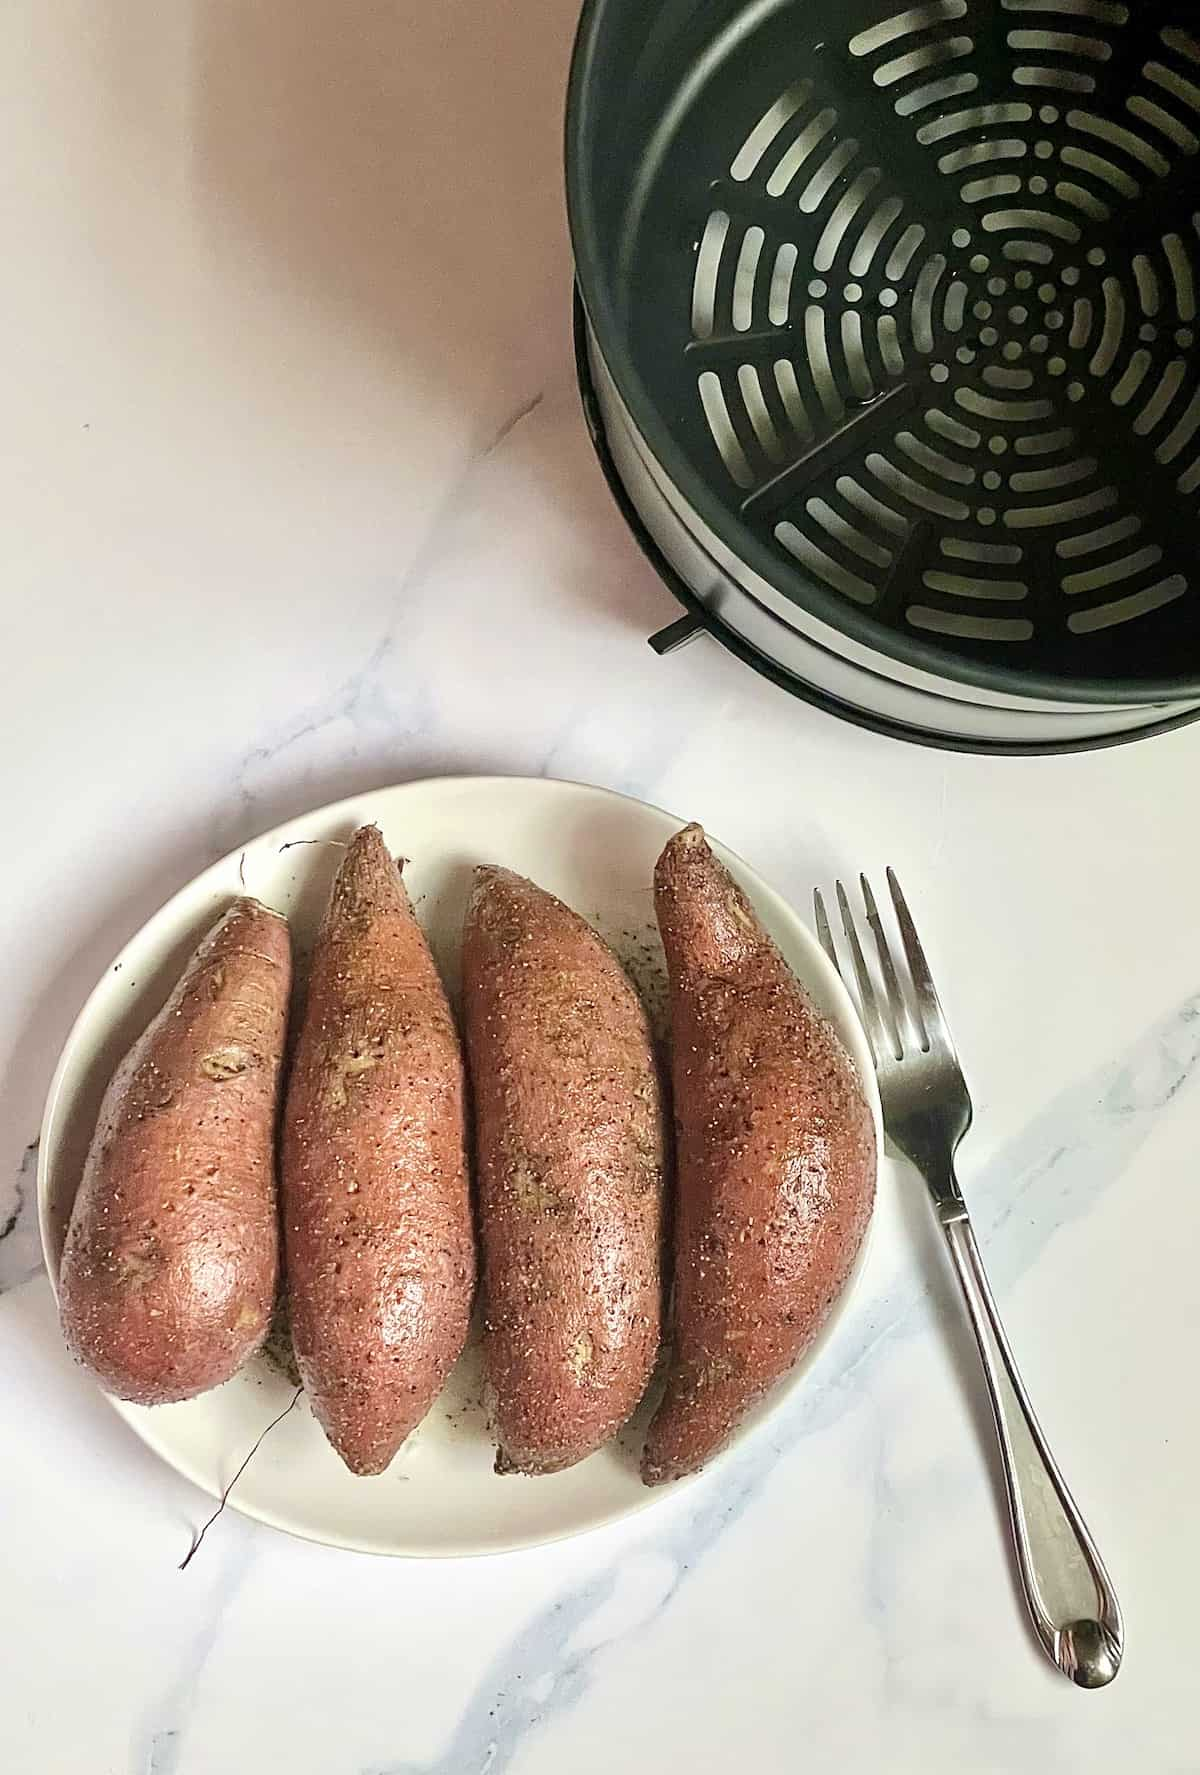 sweet potatoes on a white plate next to an air fryer